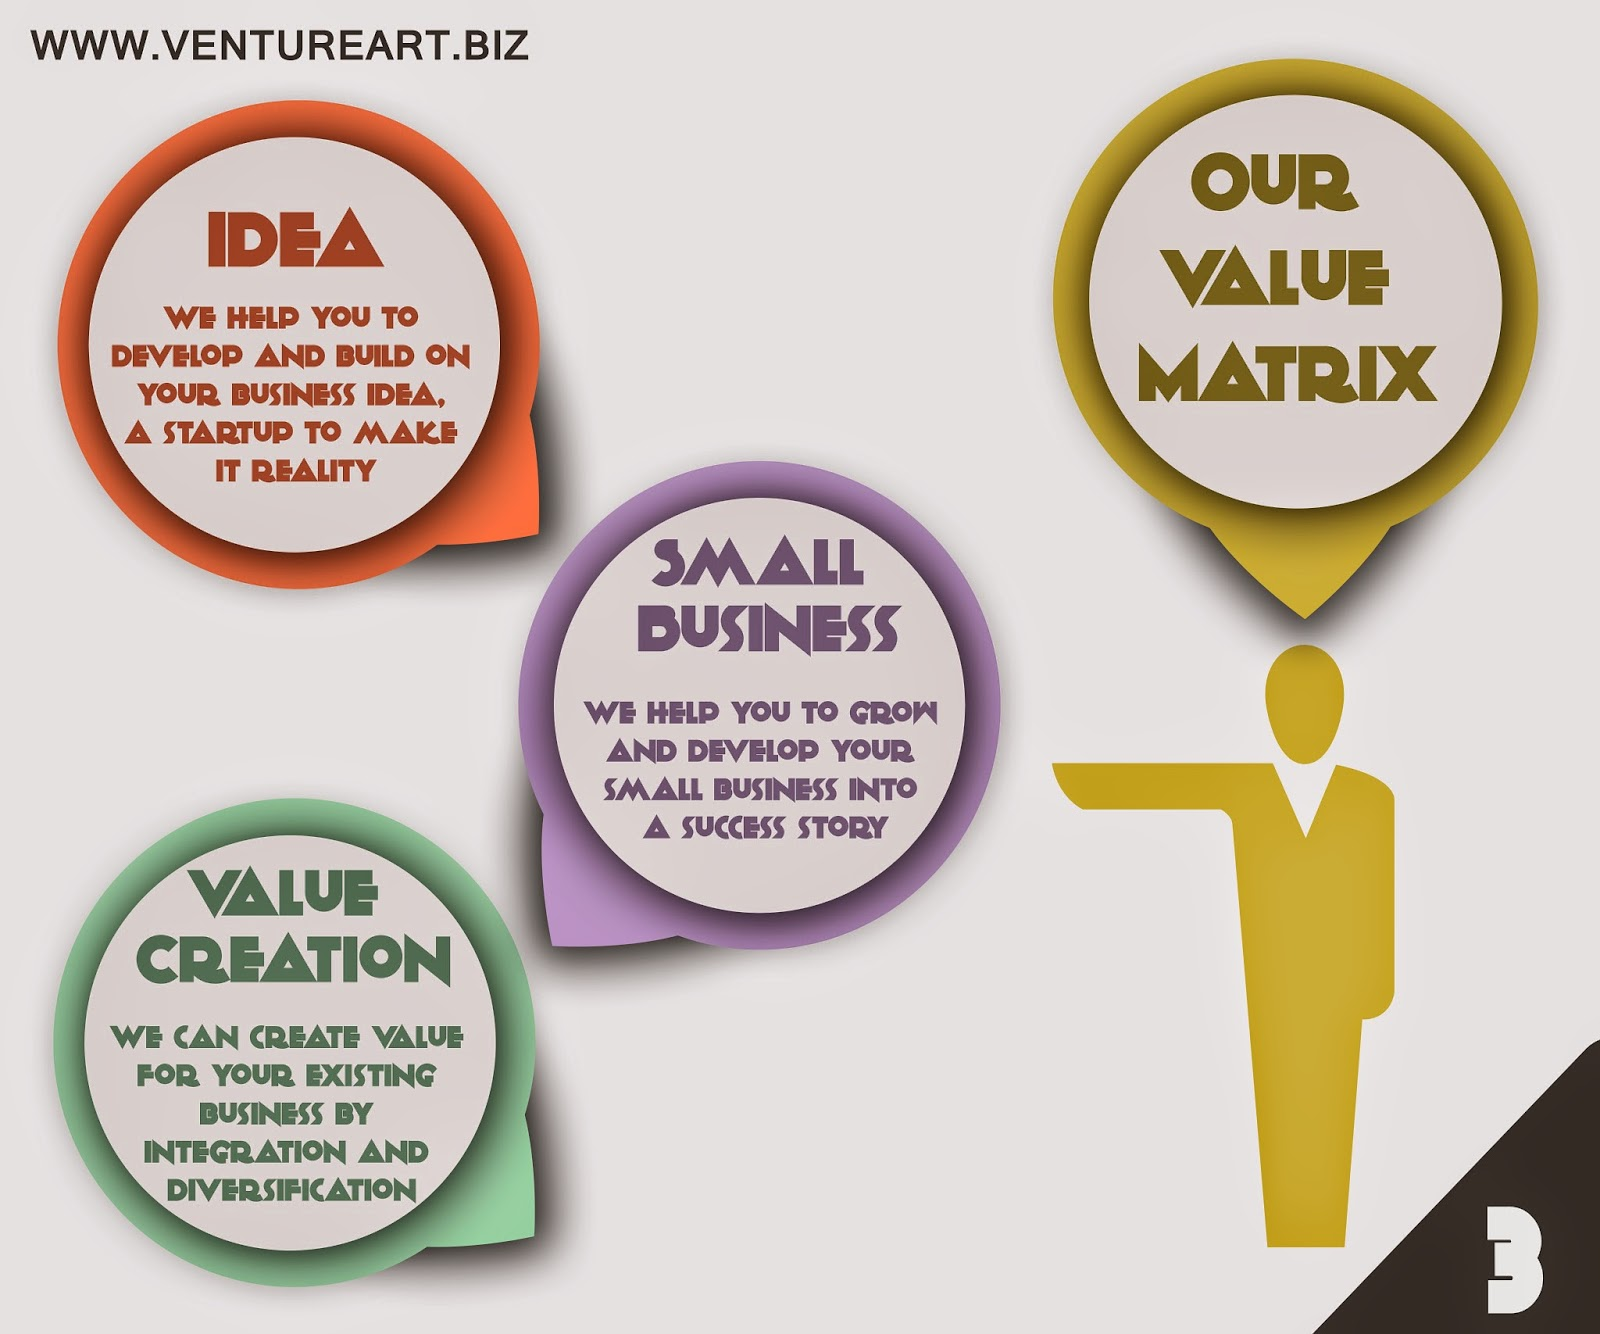 Start-Up  Developing Ideas Creating Value - Venture Art